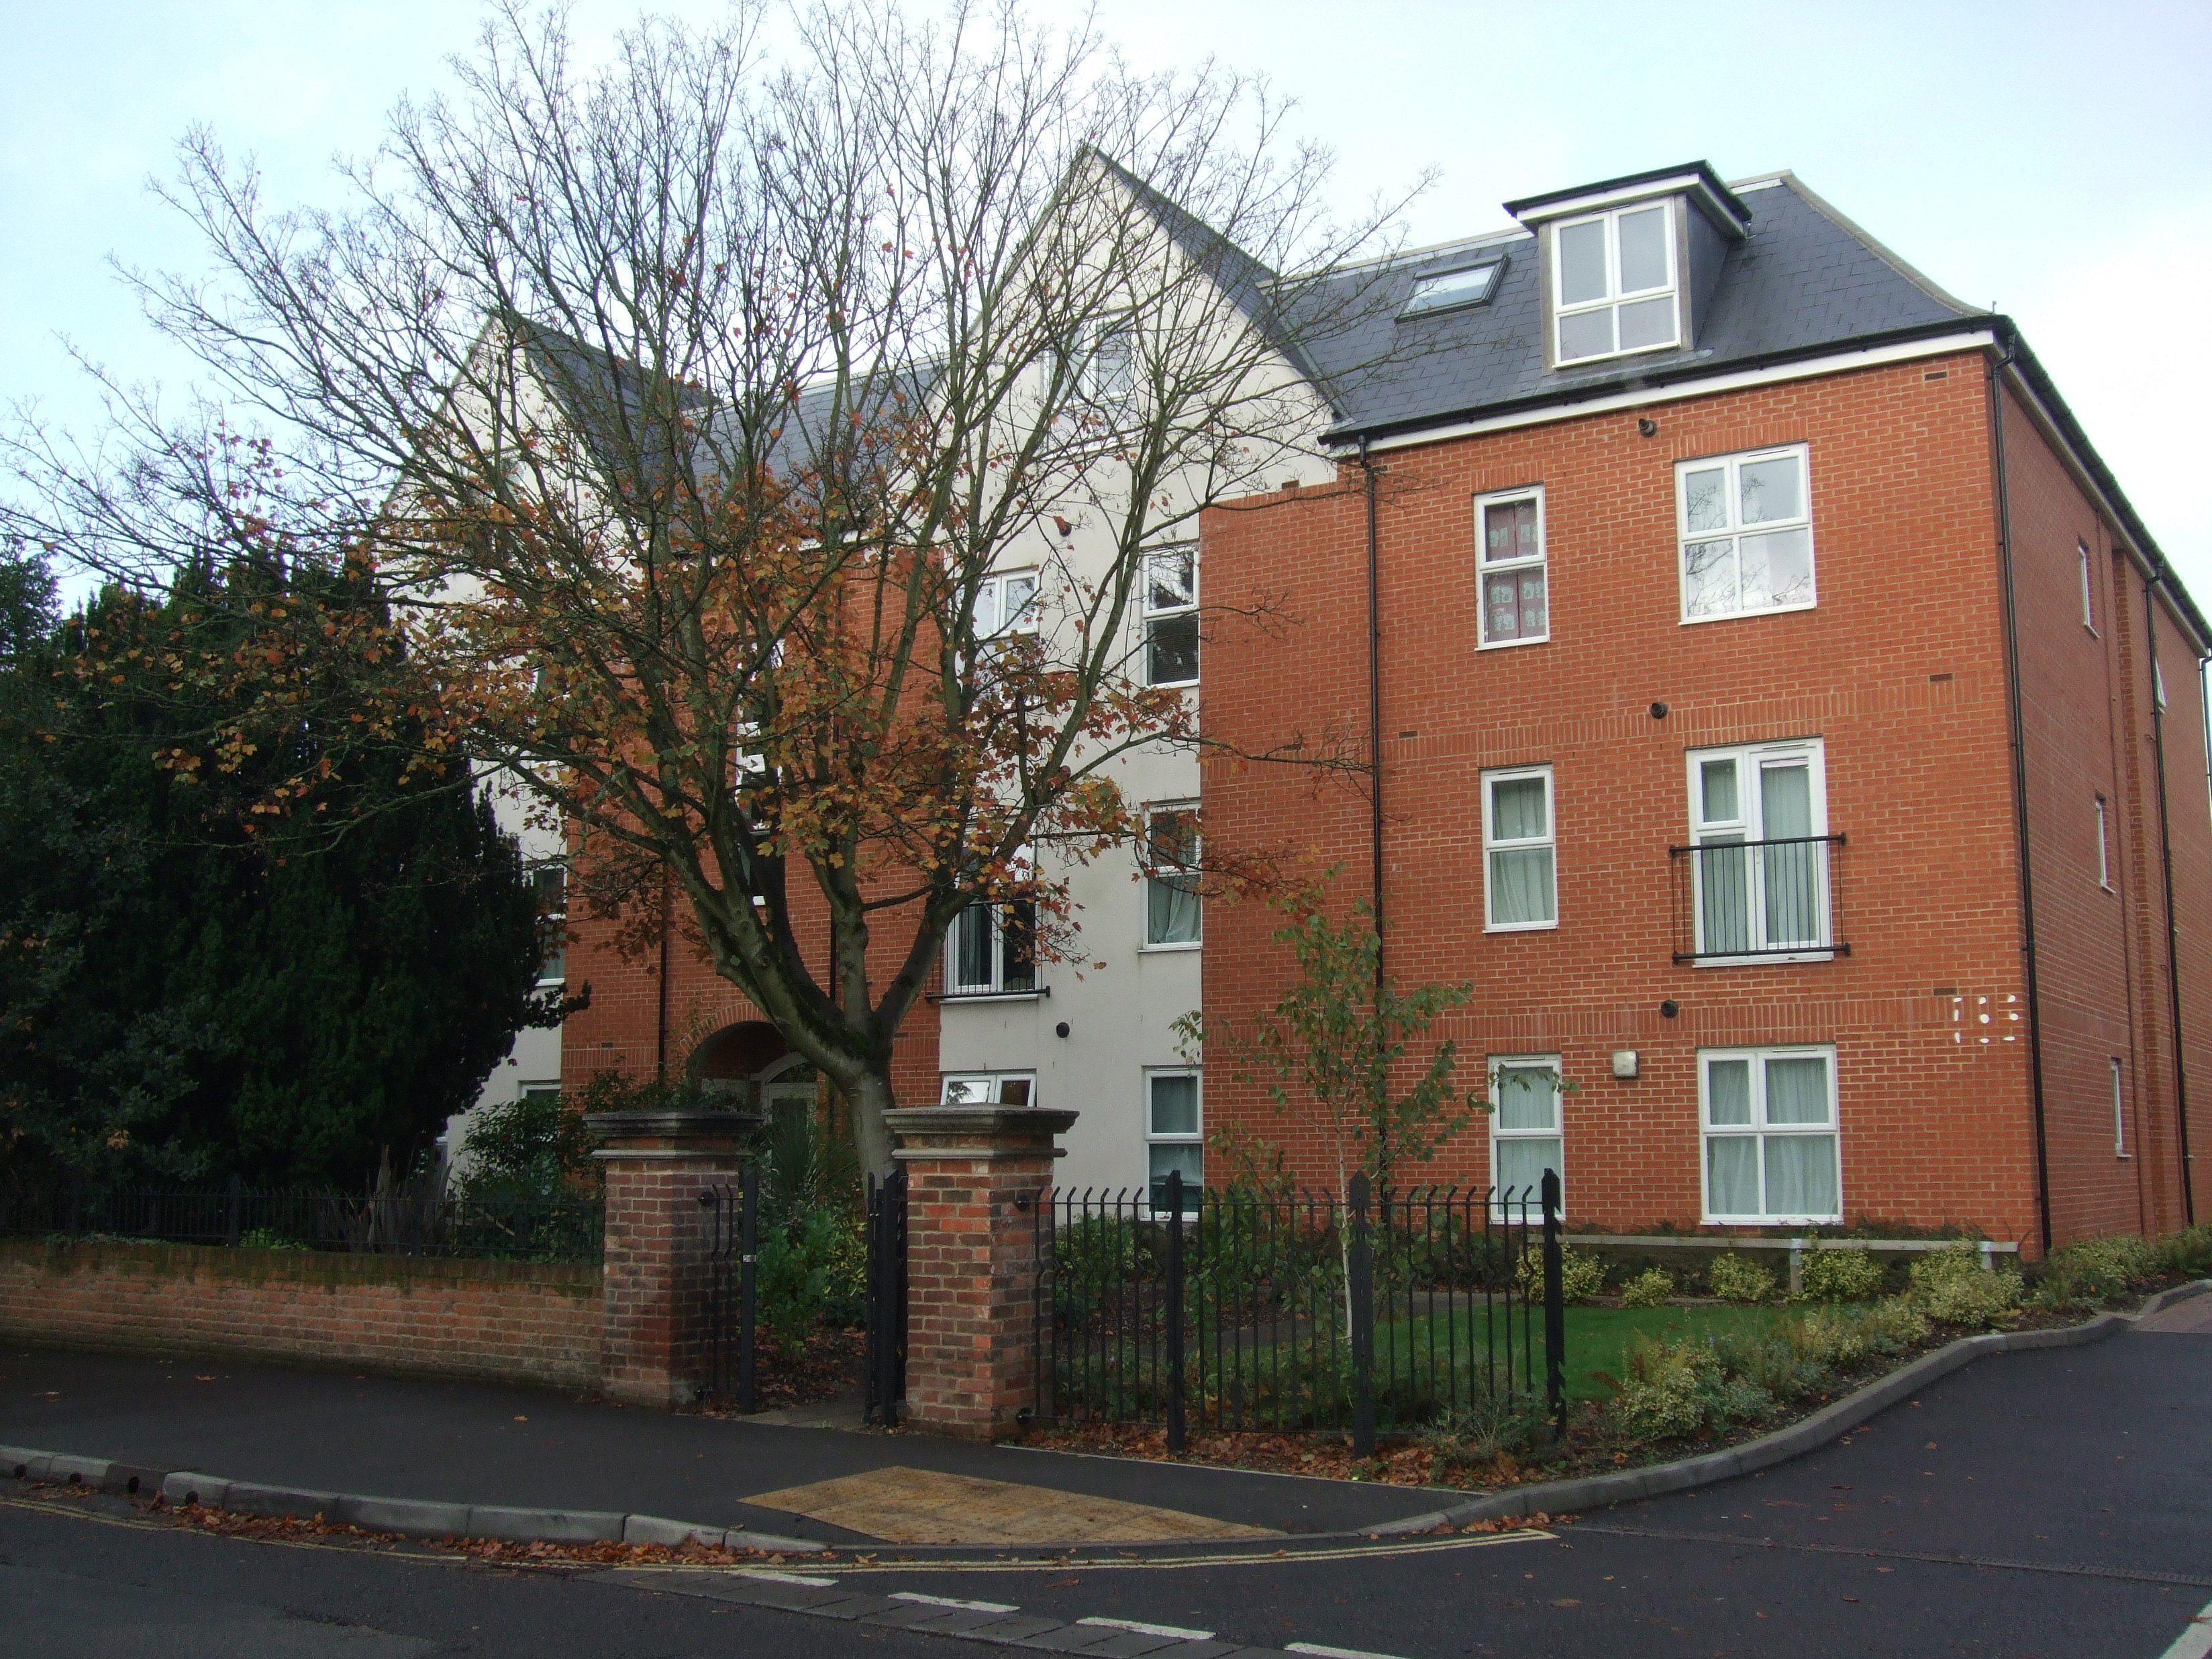 Best 1 Bed Flat To Rent 1A Archers Road Southampton So15 2Ta With Pictures